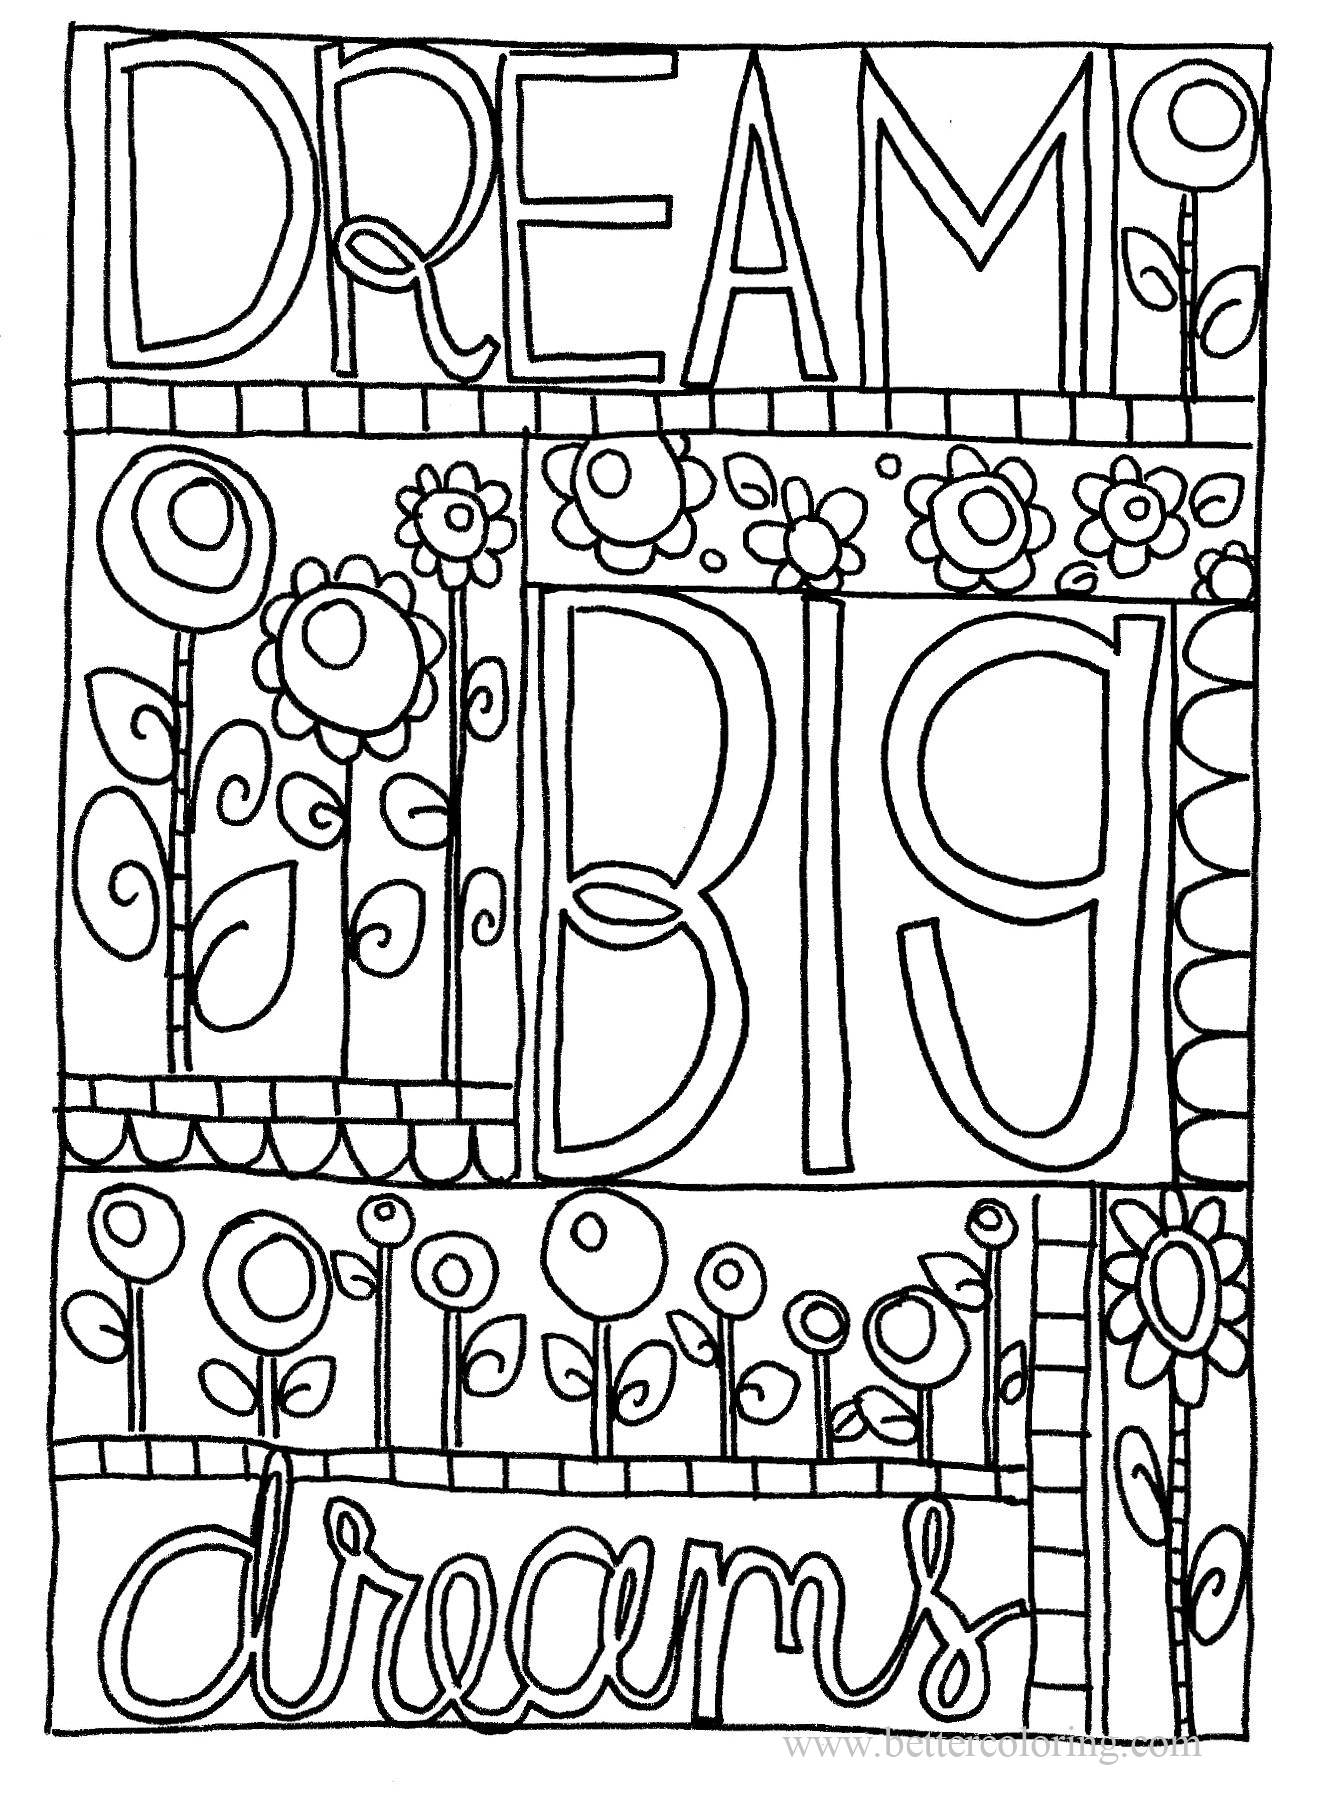 Free Dream Big for Sharpie Coloring Pages printable